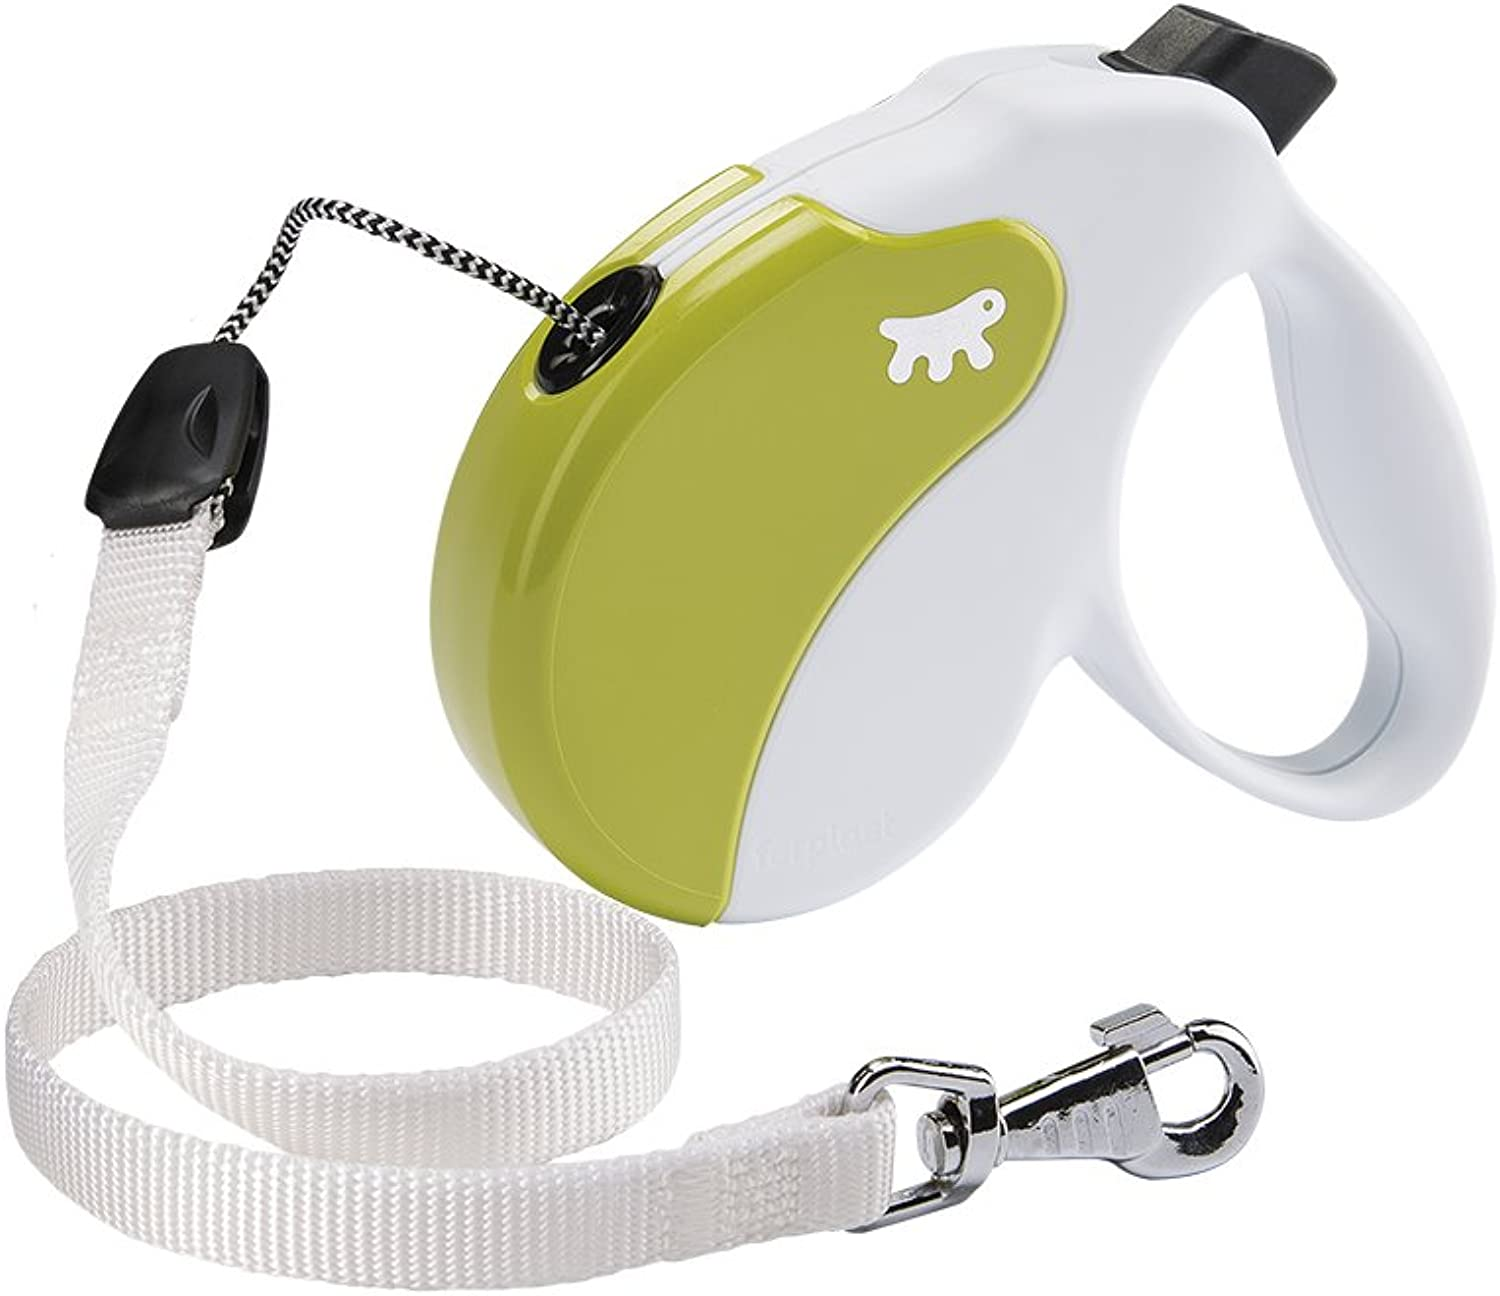 Ferplast AMIGO Cord Retractable Dog Lead, 5m,, Large, 16 x 3.8 x 15cm, , Large, White